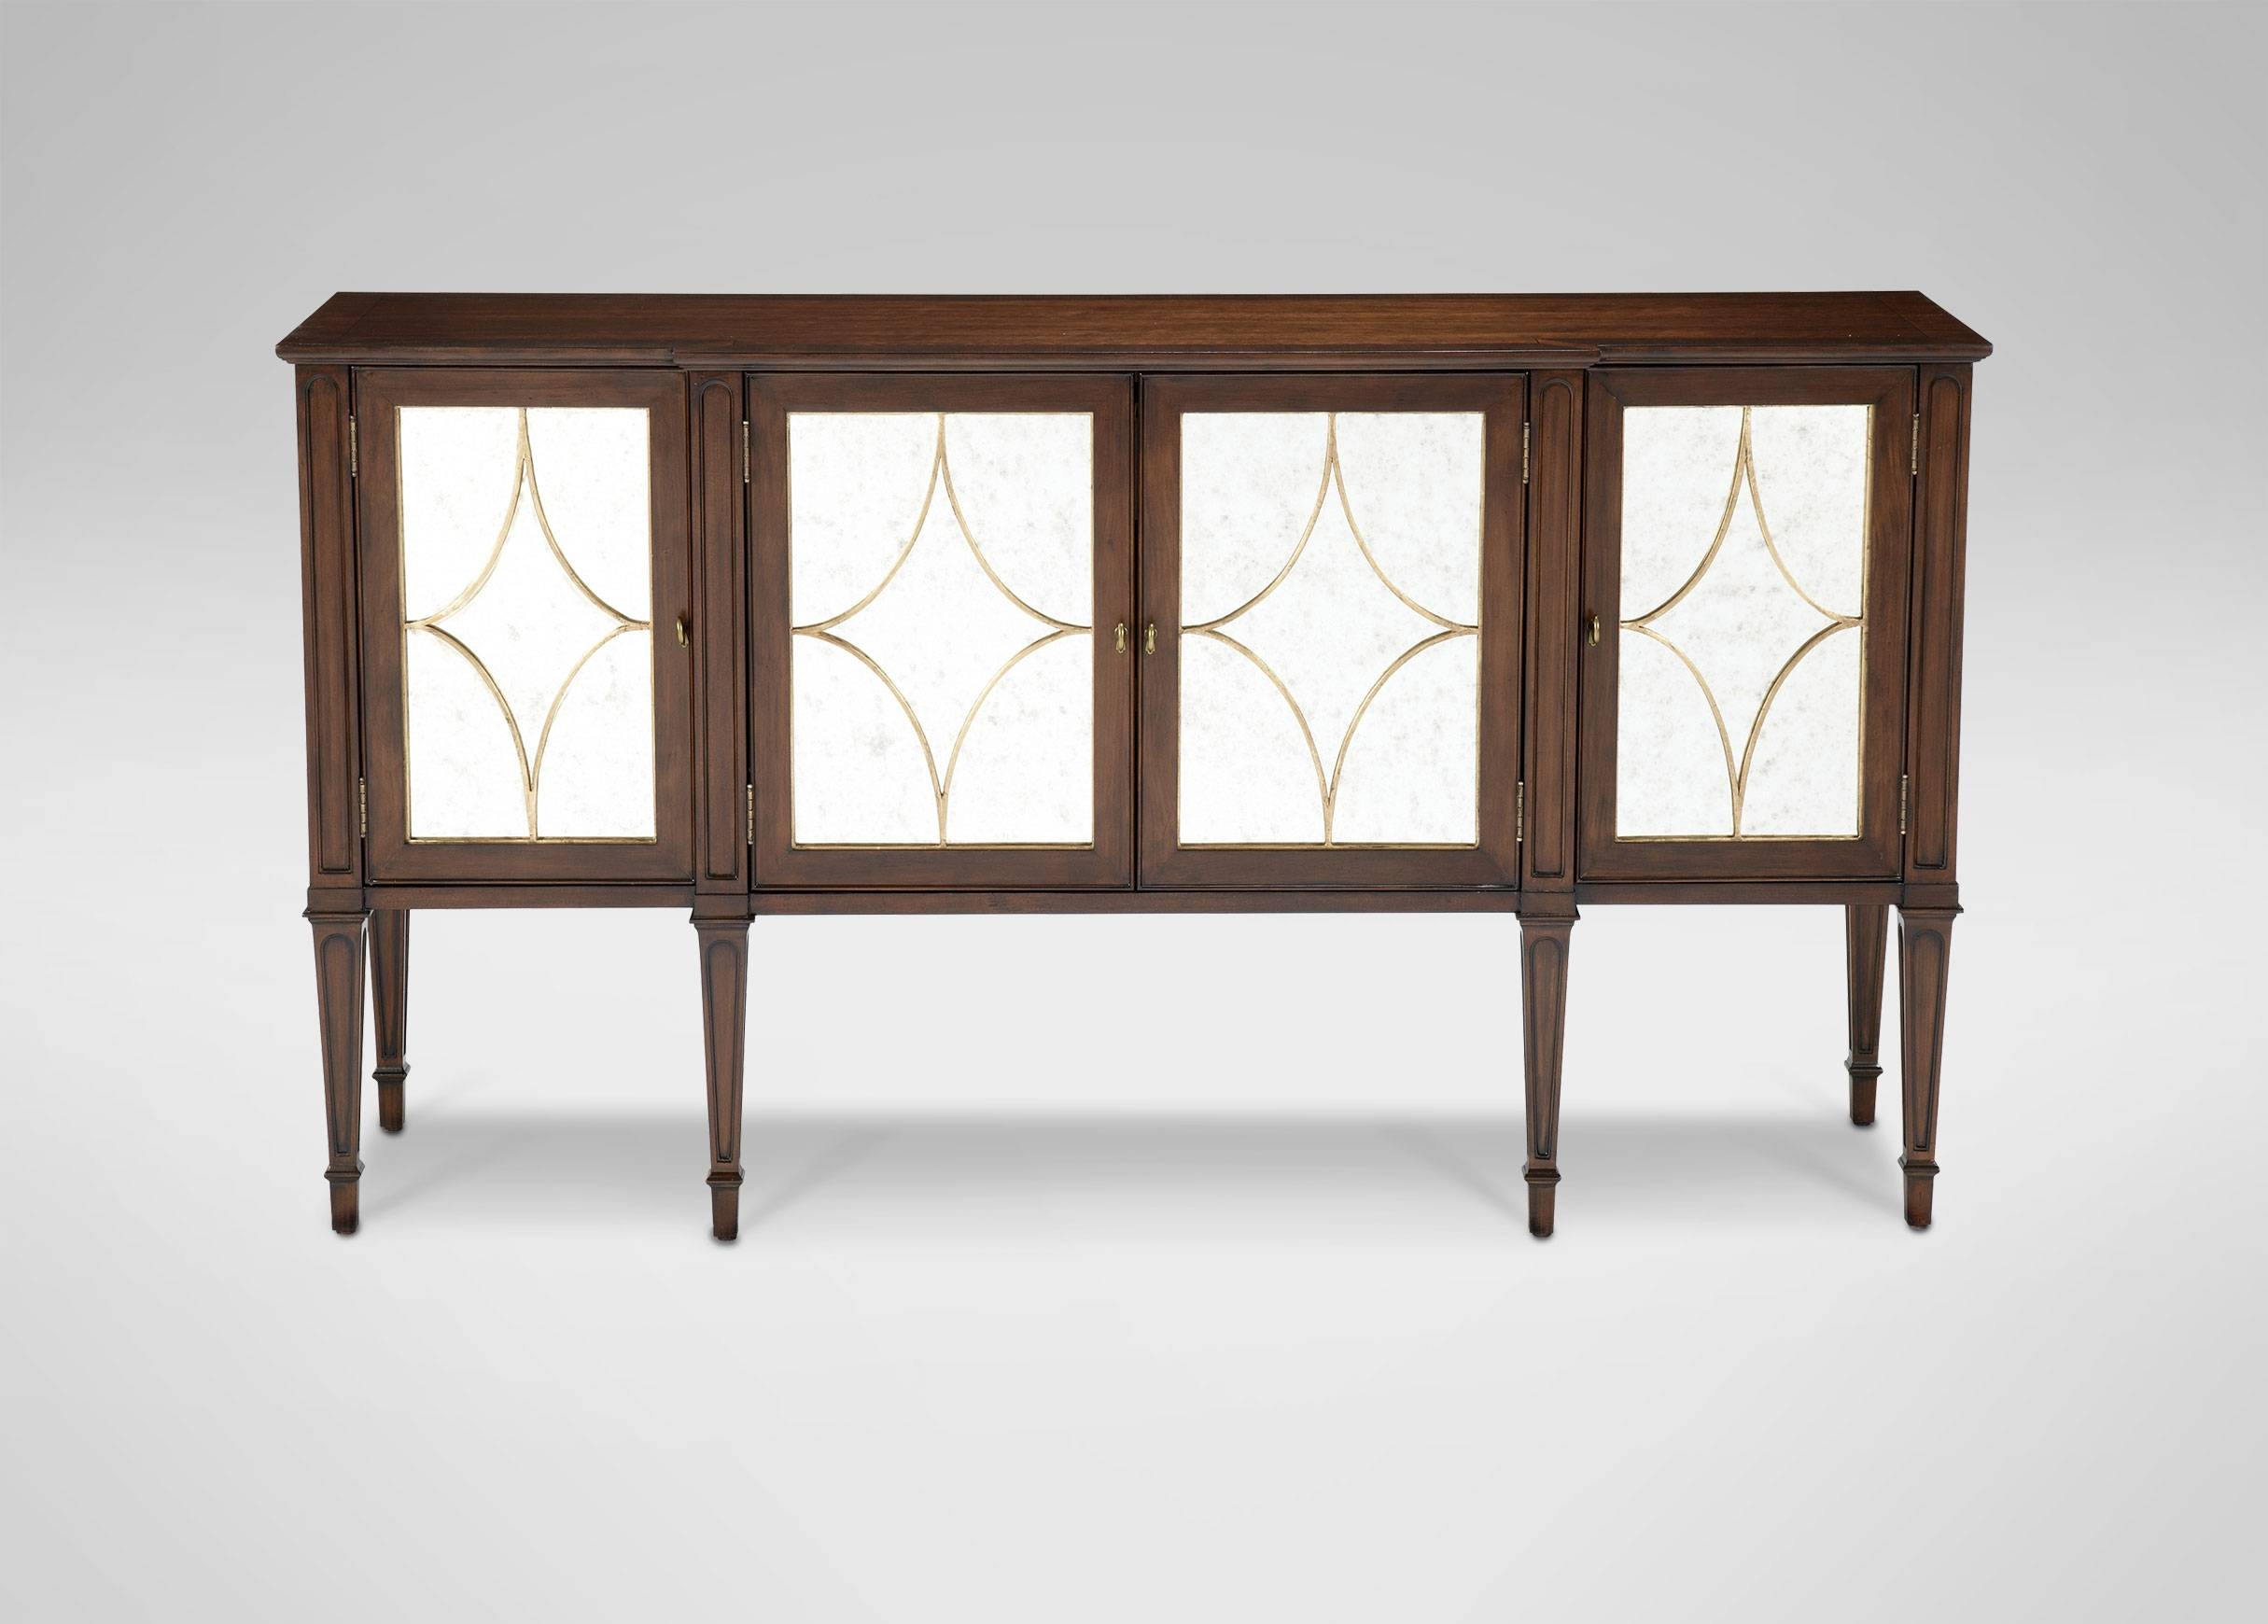 Norwich Sideboard | Buffets, Sideboards & Servers Throughout Most Popular Ethan Allen Sideboards (View 2 of 15)